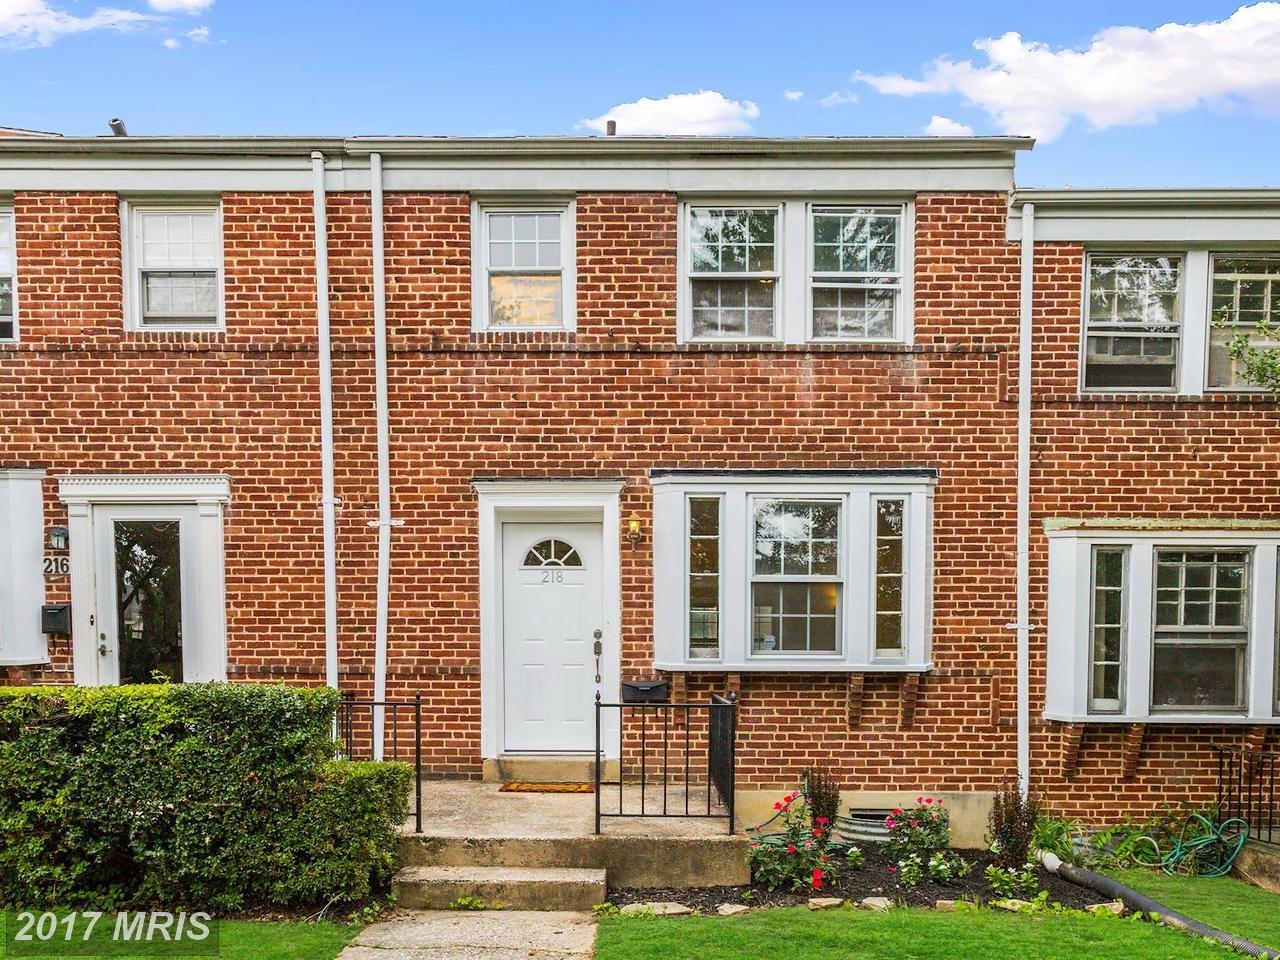 218 Ridge Ave, Baltimore, MD 21286 - Recently Sold | Trulia